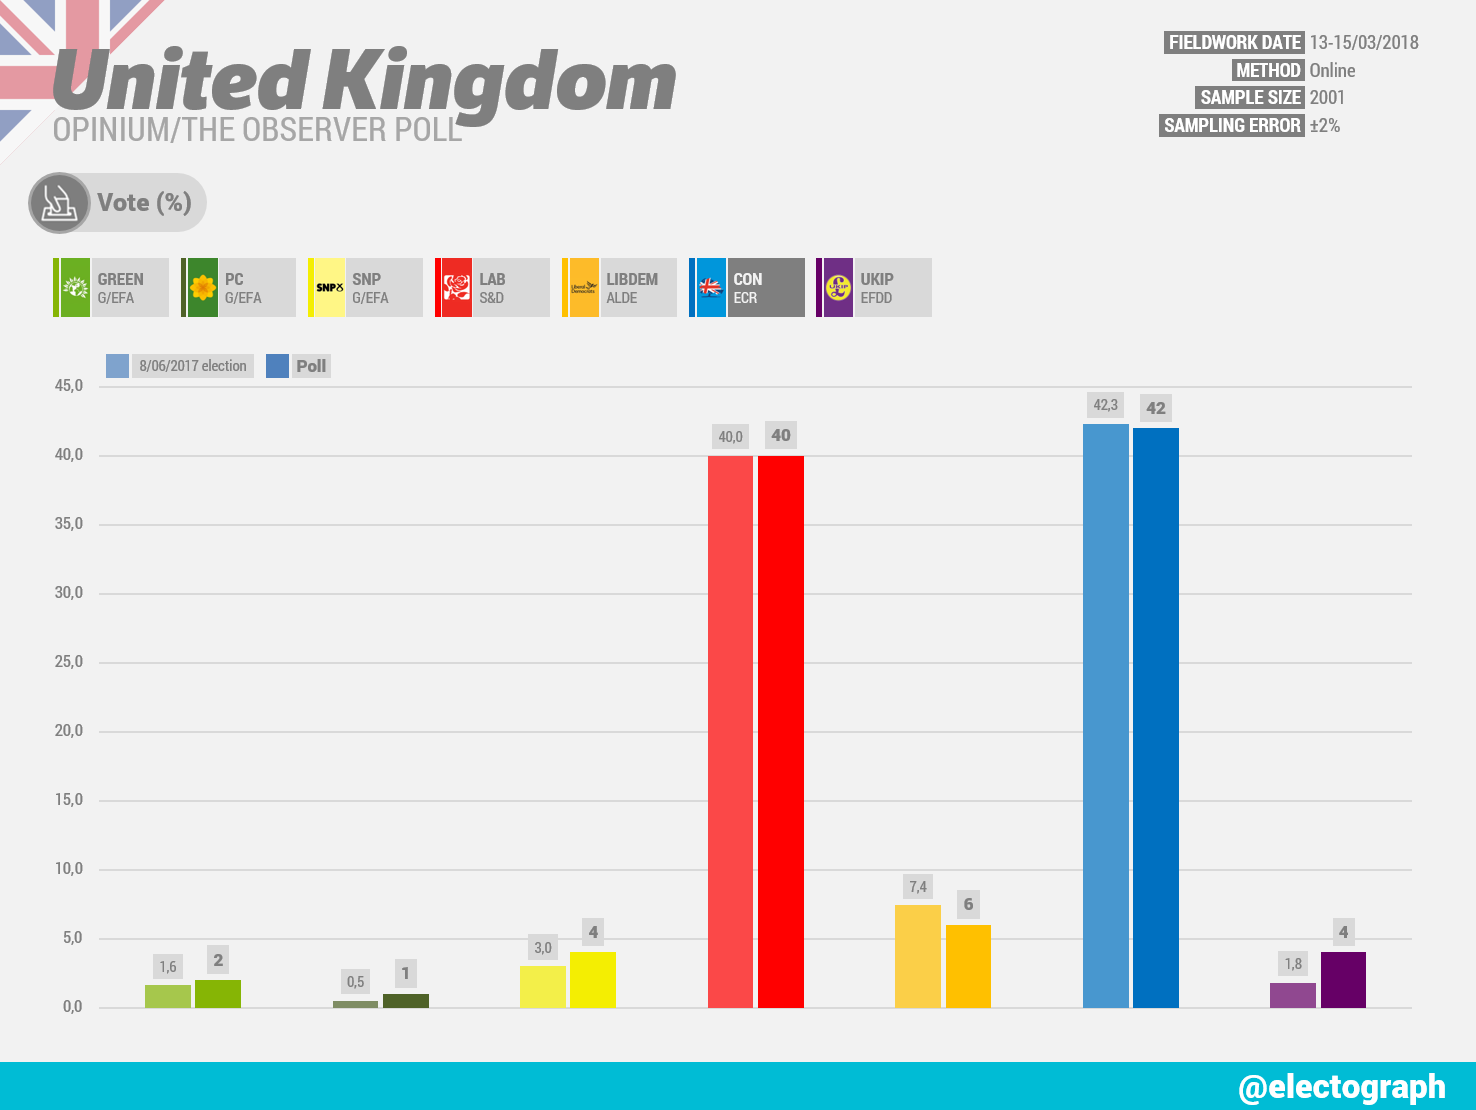 UNITED KINGDOM Opinium poll chart for The Observer, March 2018